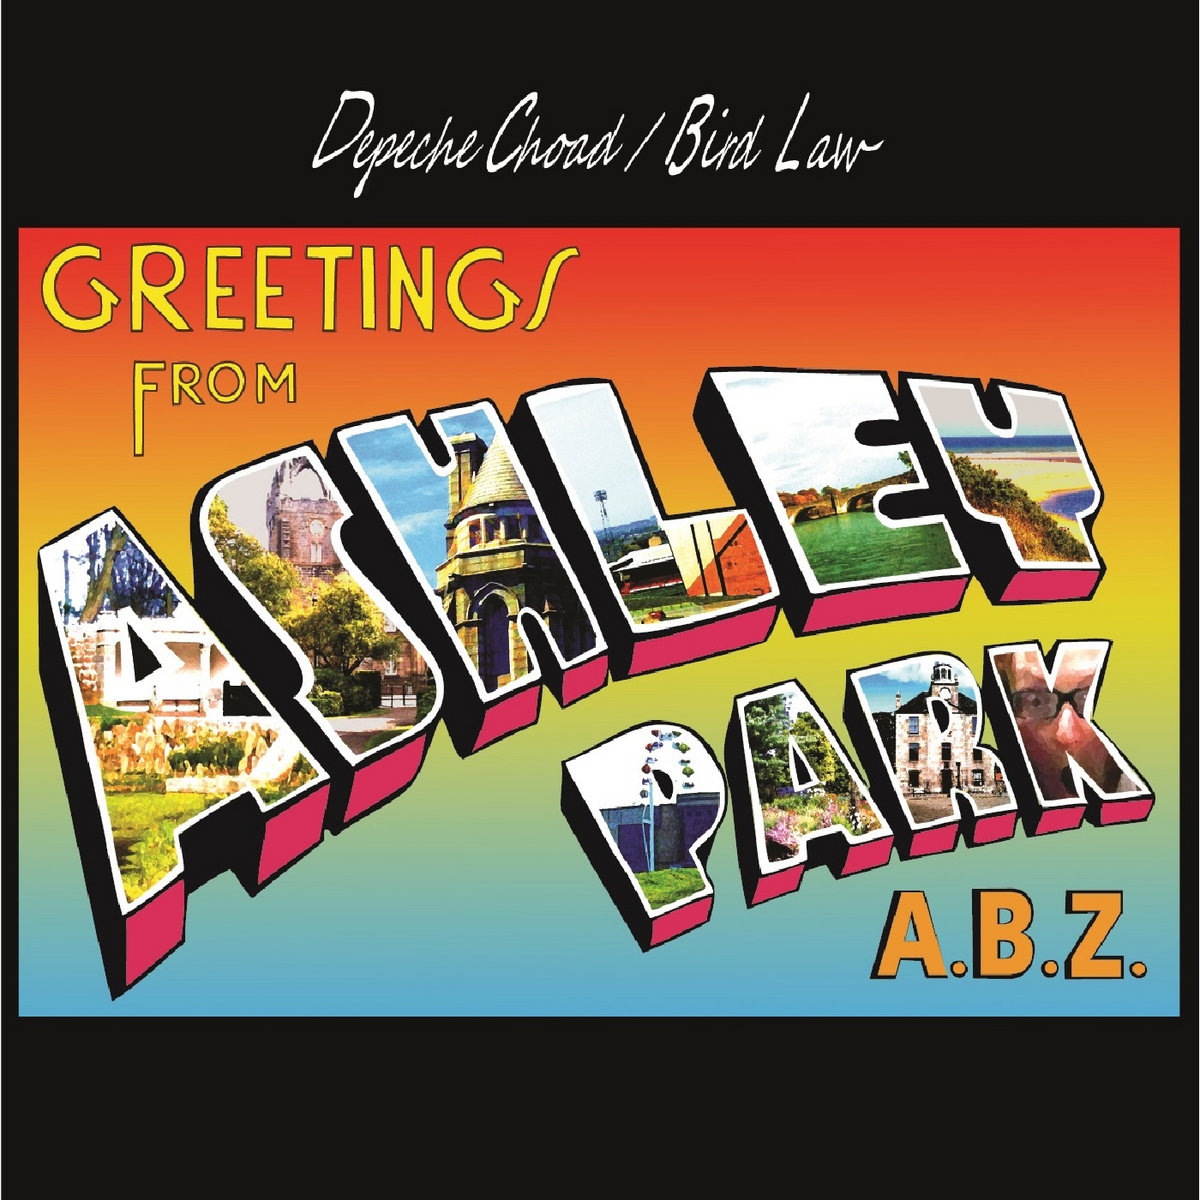 Greetings from ashley park abz bird law greetings from ashley park abz m4hsunfo